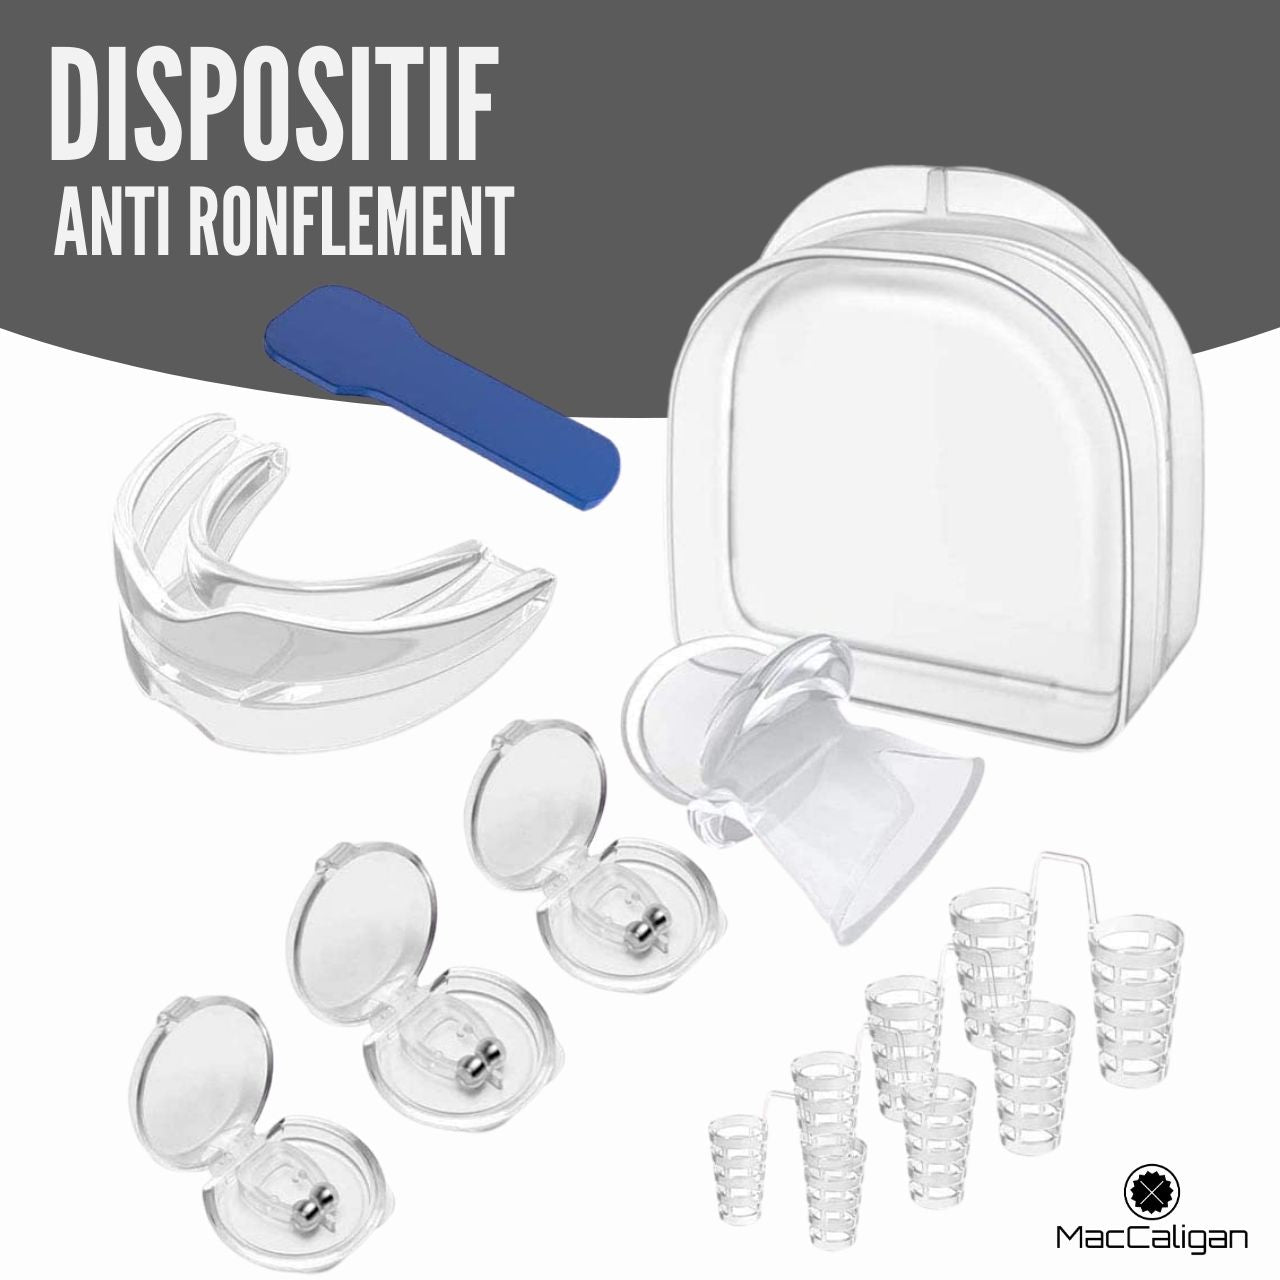 Dispositif Anti Ronflement Snorestop